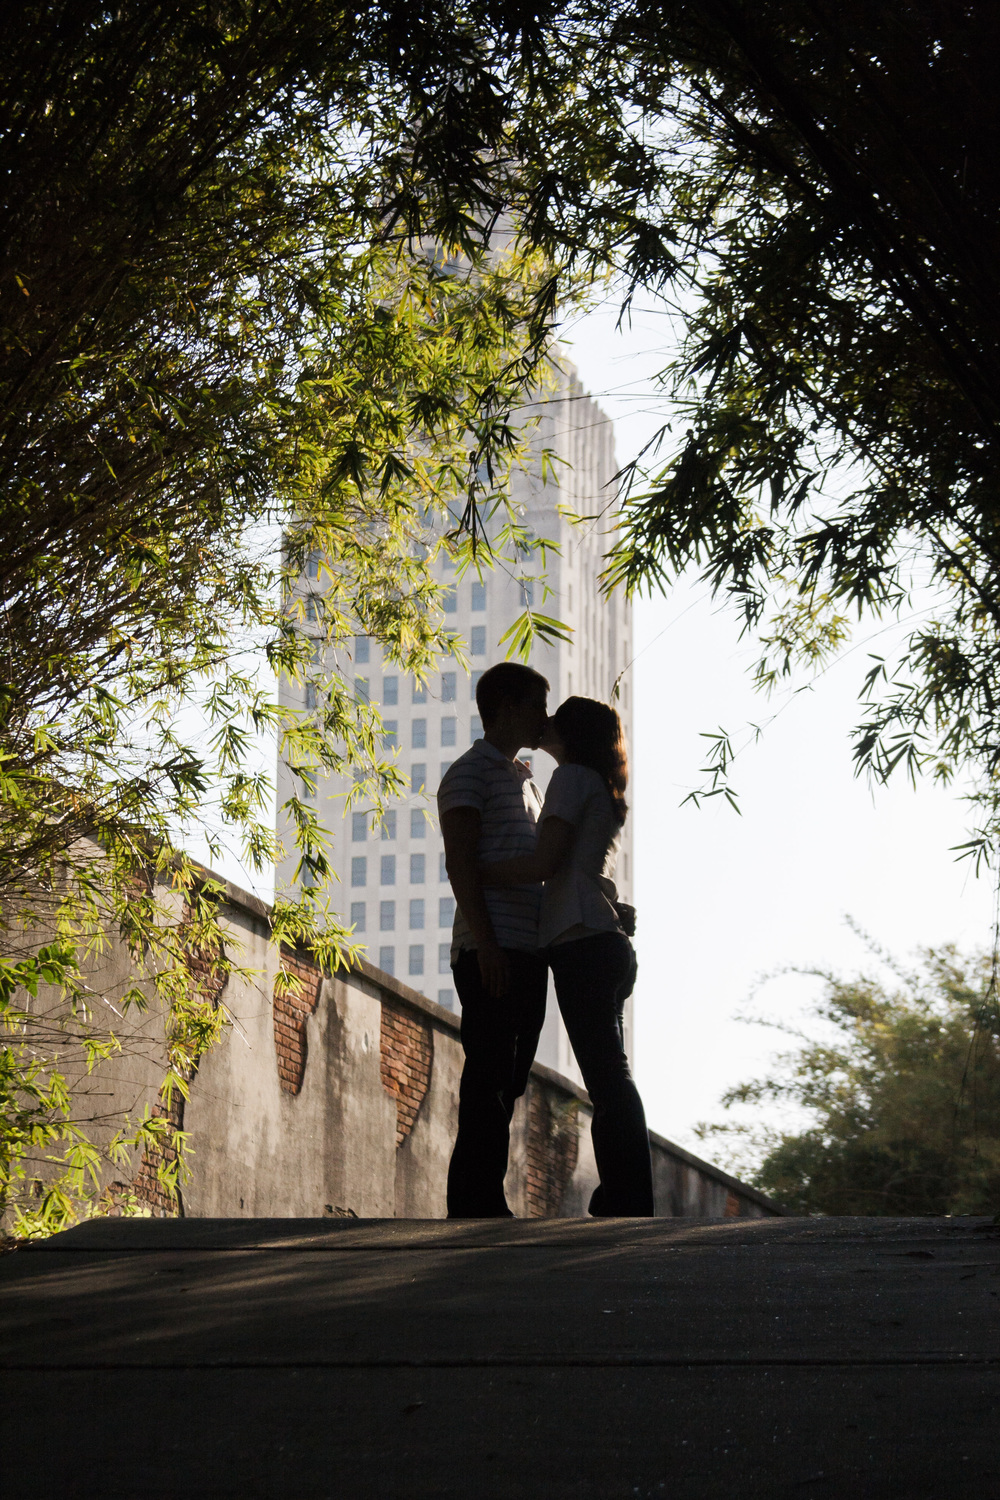 Baton Rouge New Orleans Louisiana wedding photographer